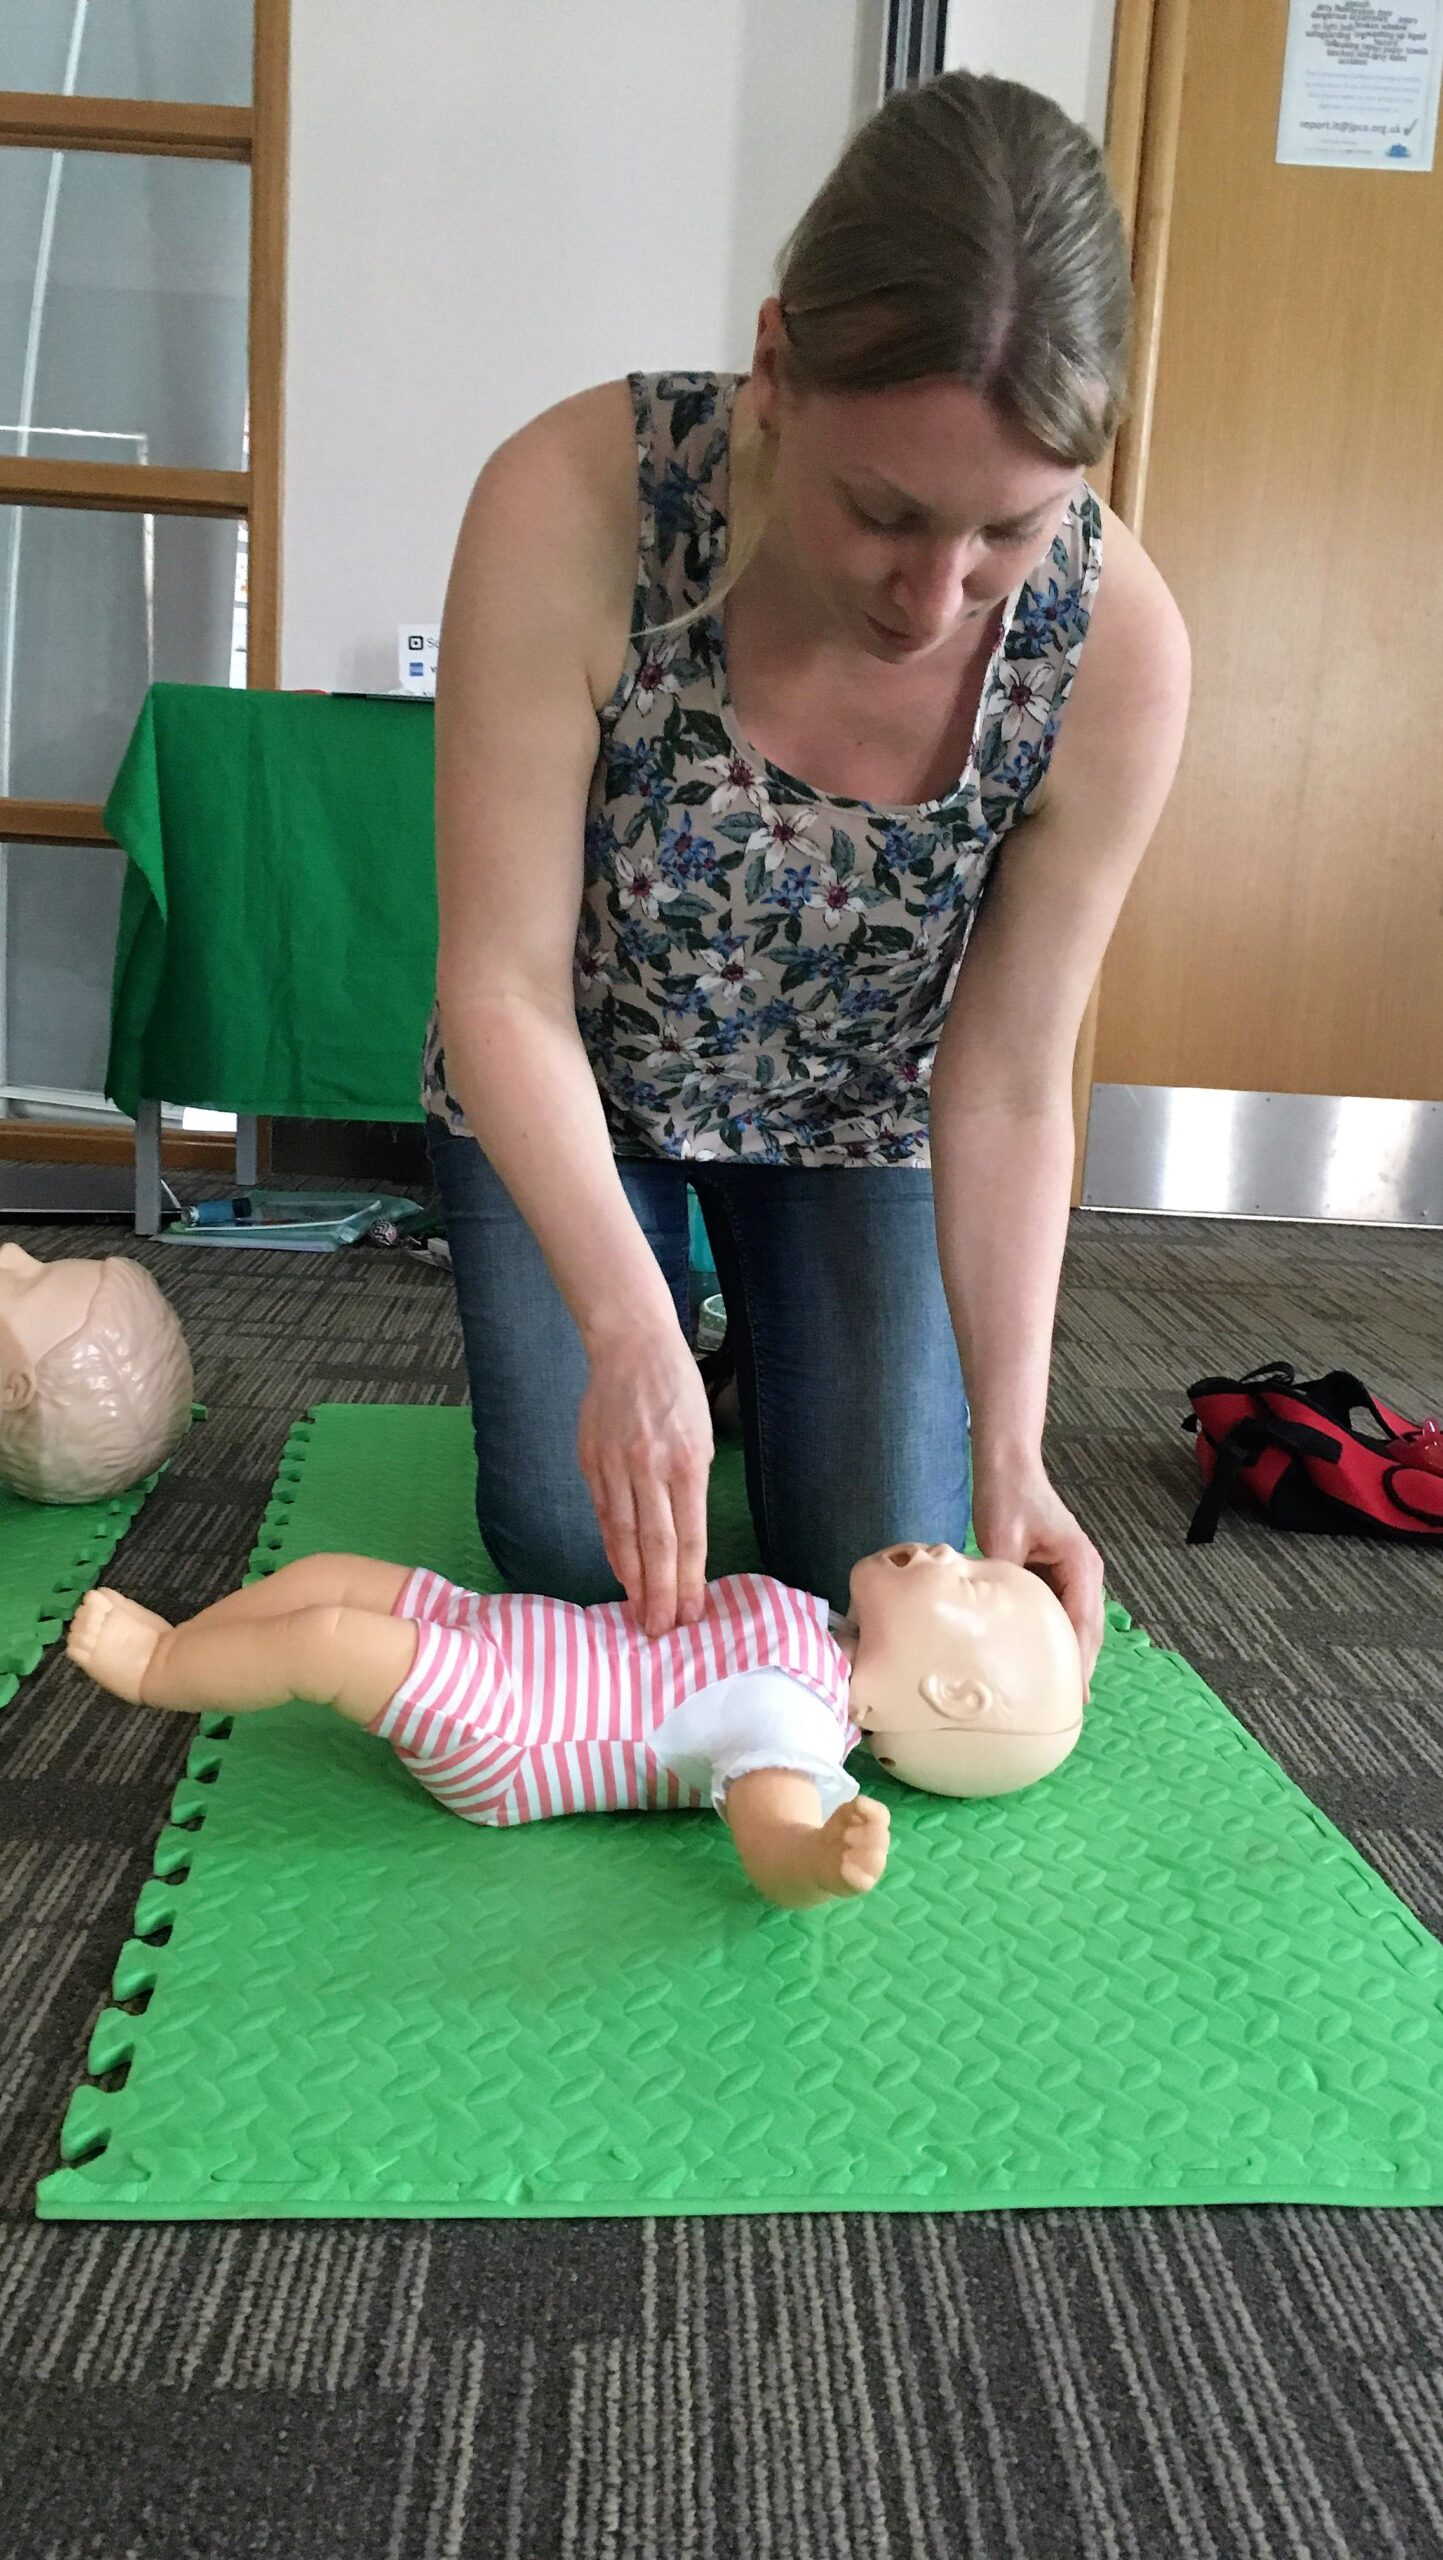 compressions on the baby's chest